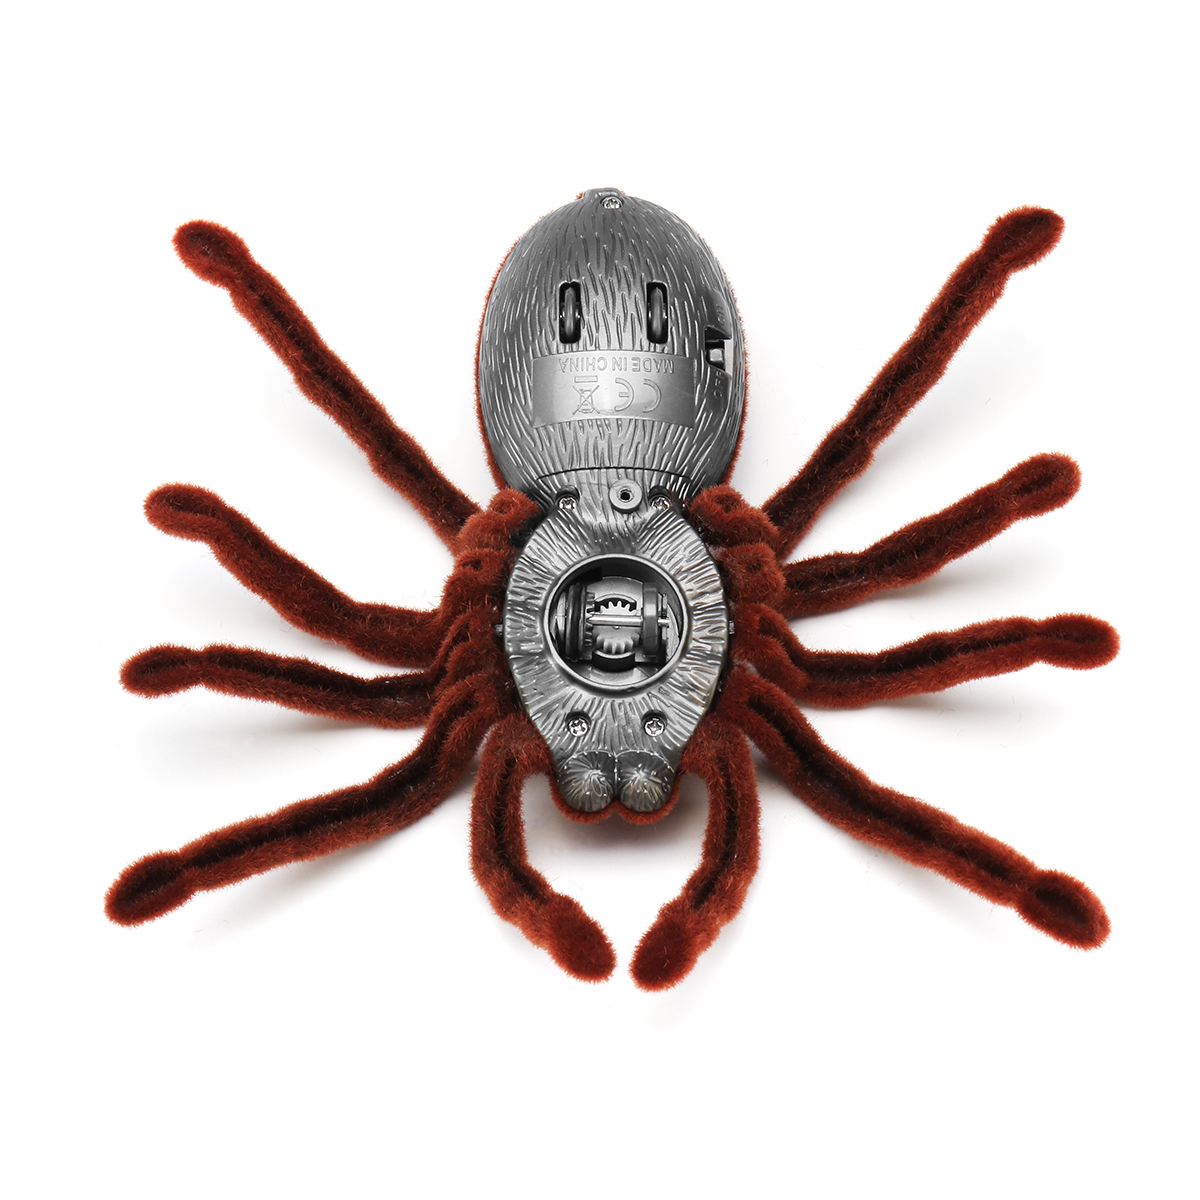 Remote Control Spider Novelties Toys April Fools Day Gift Collection